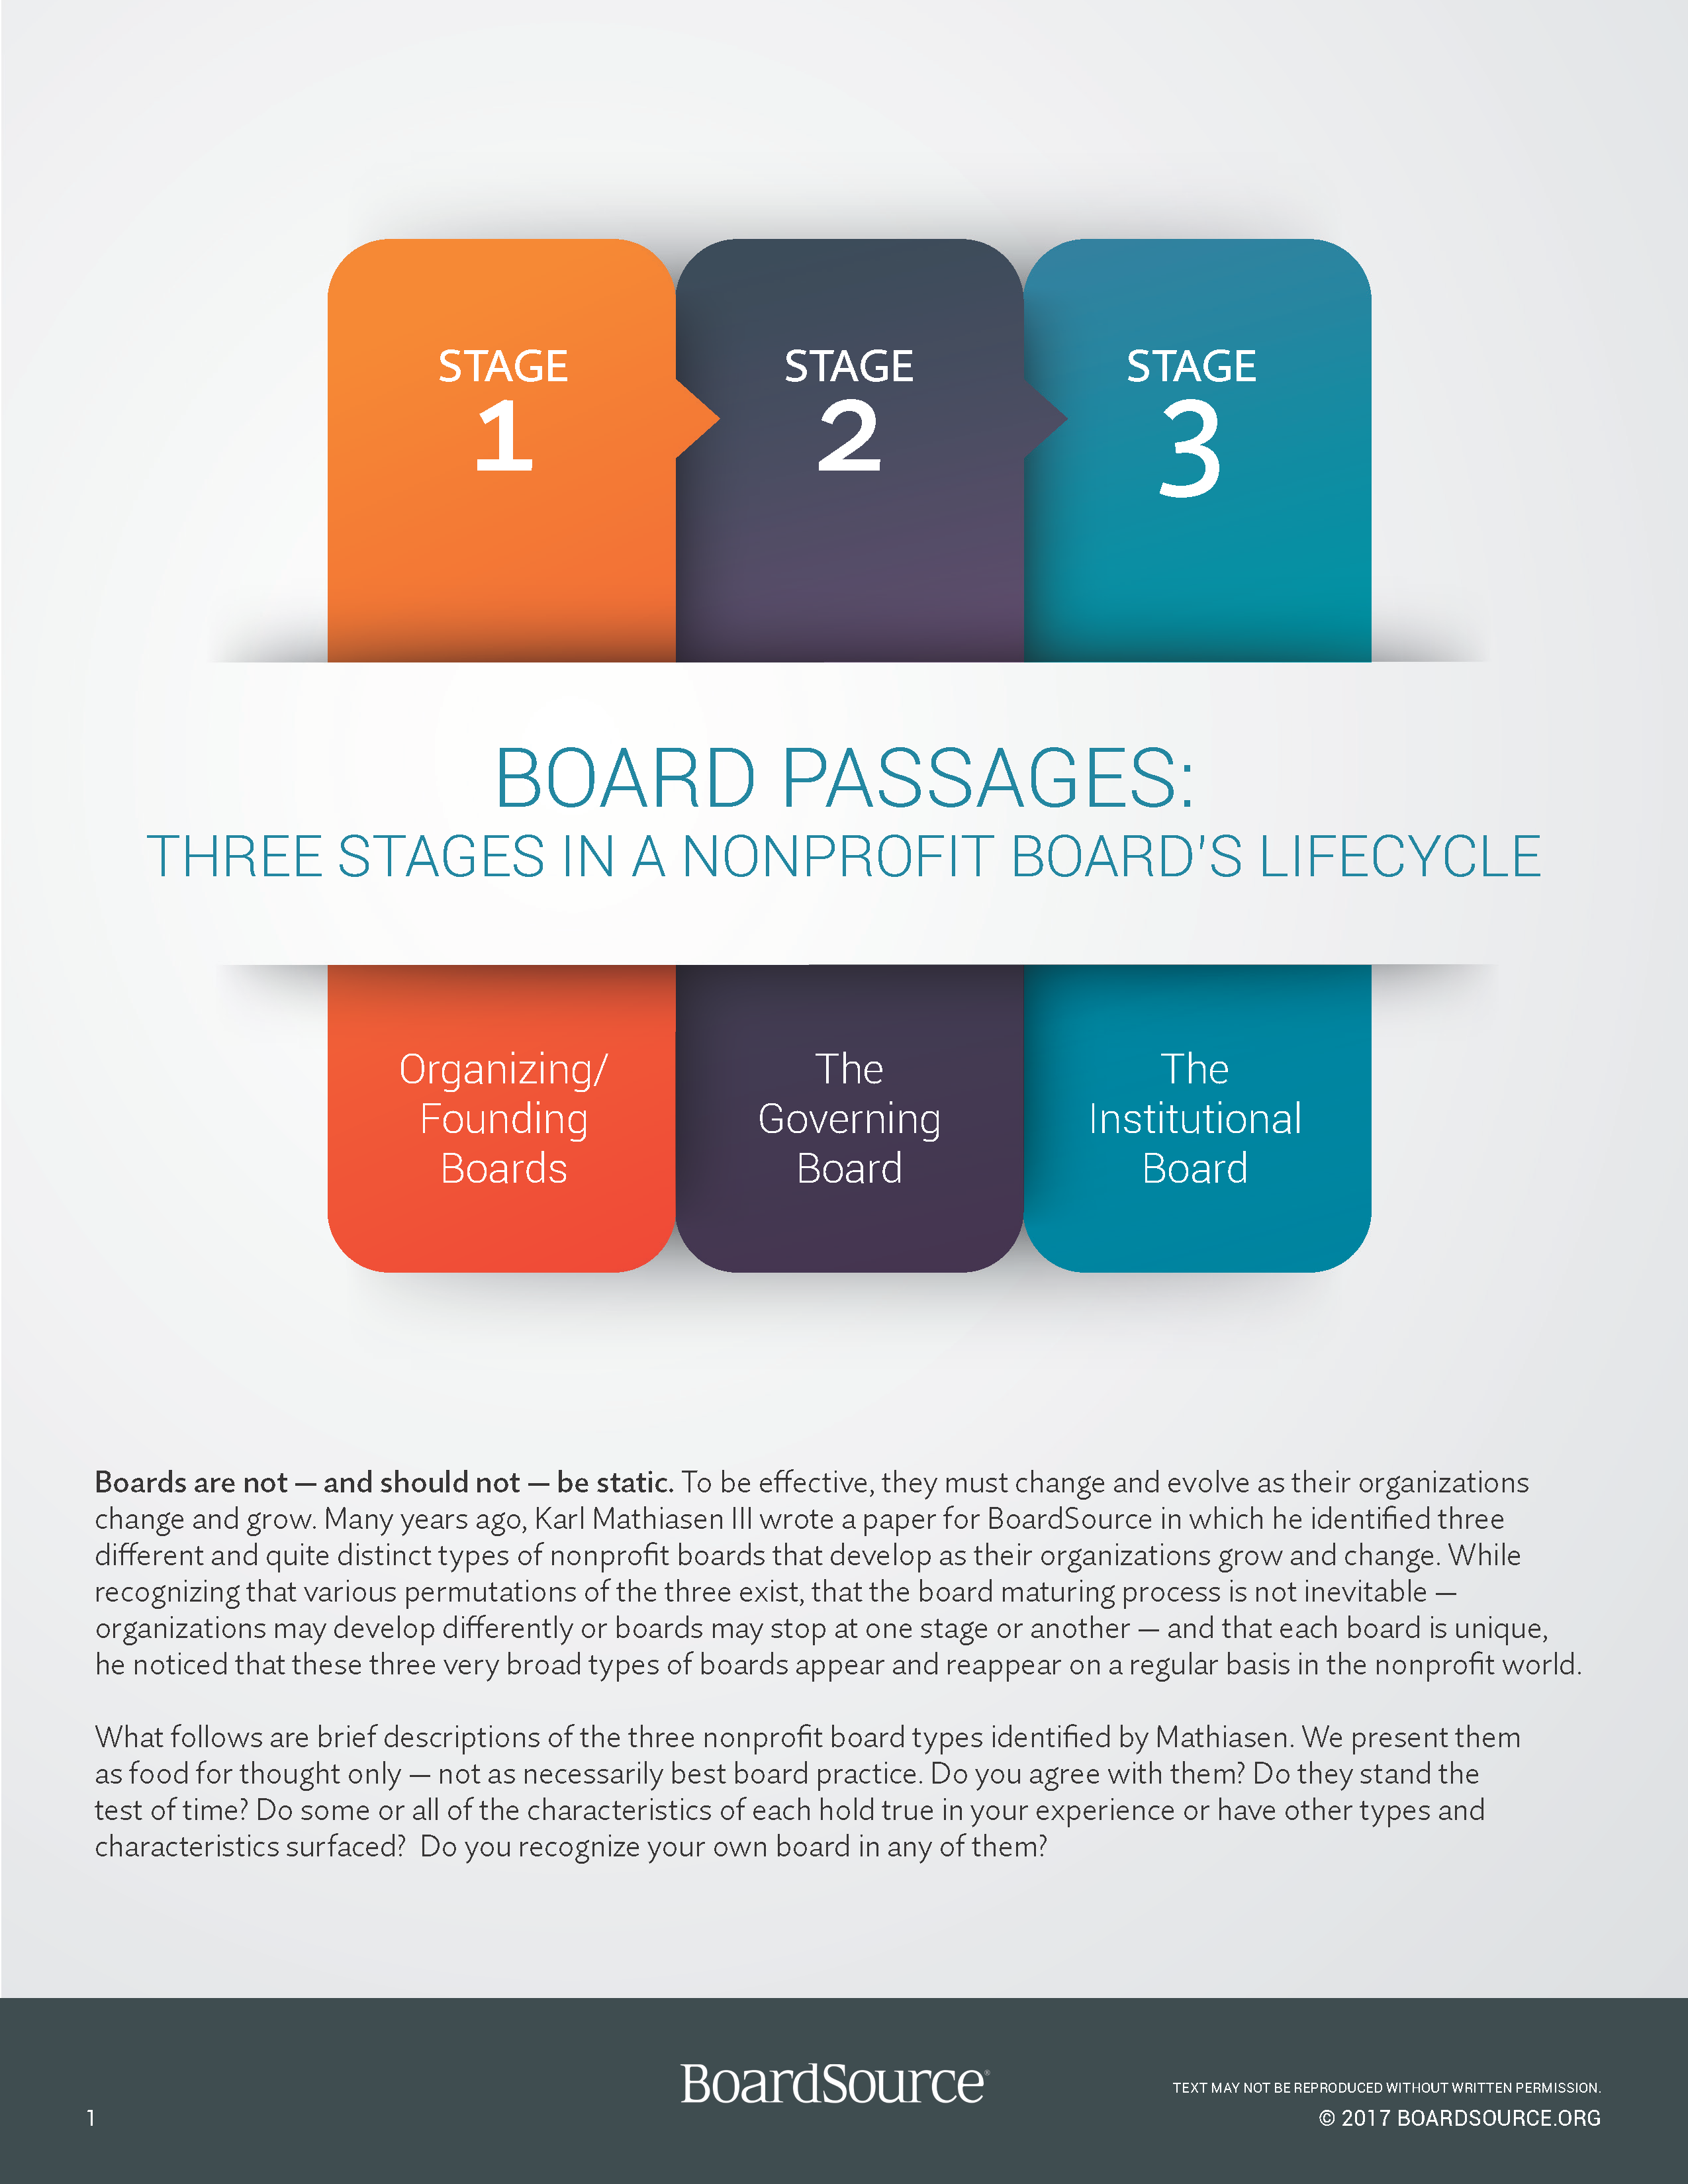 Board Passages